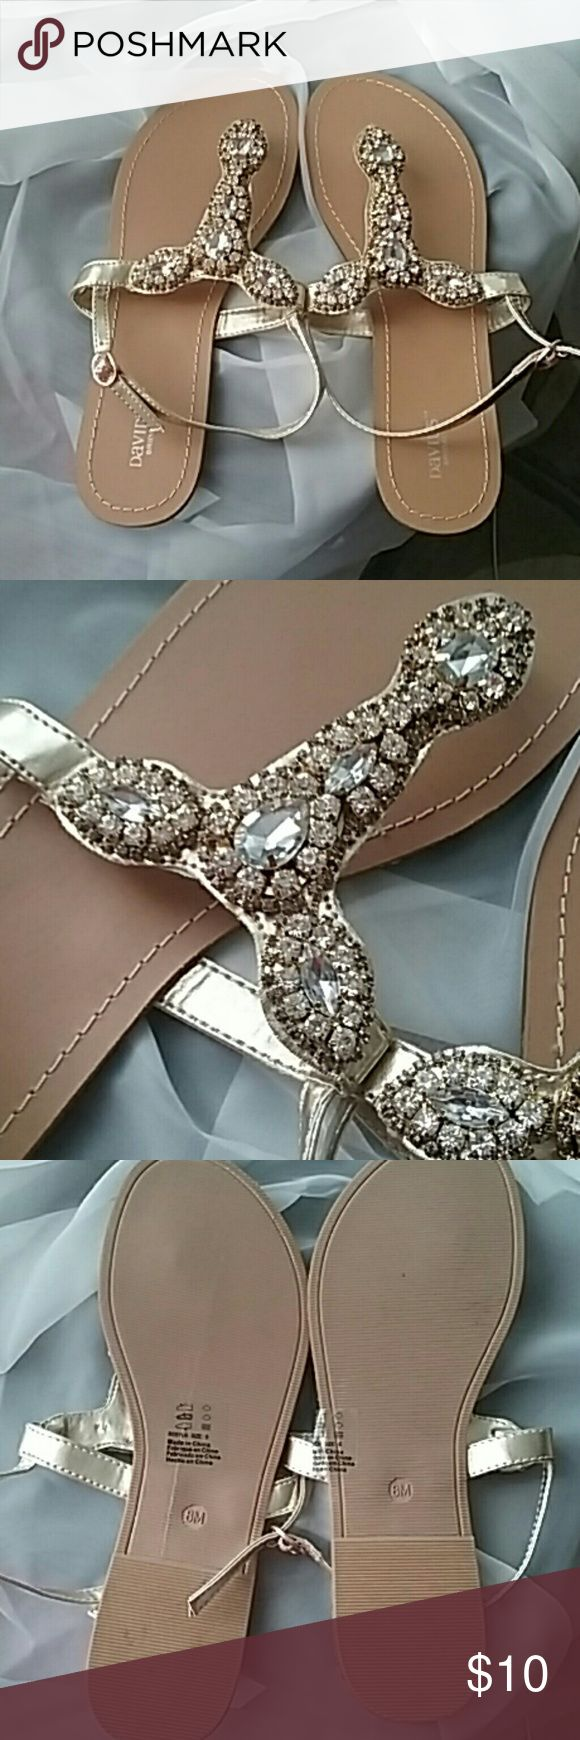 Beautiful sandals Worn one time davids bridal Shoes Sandals